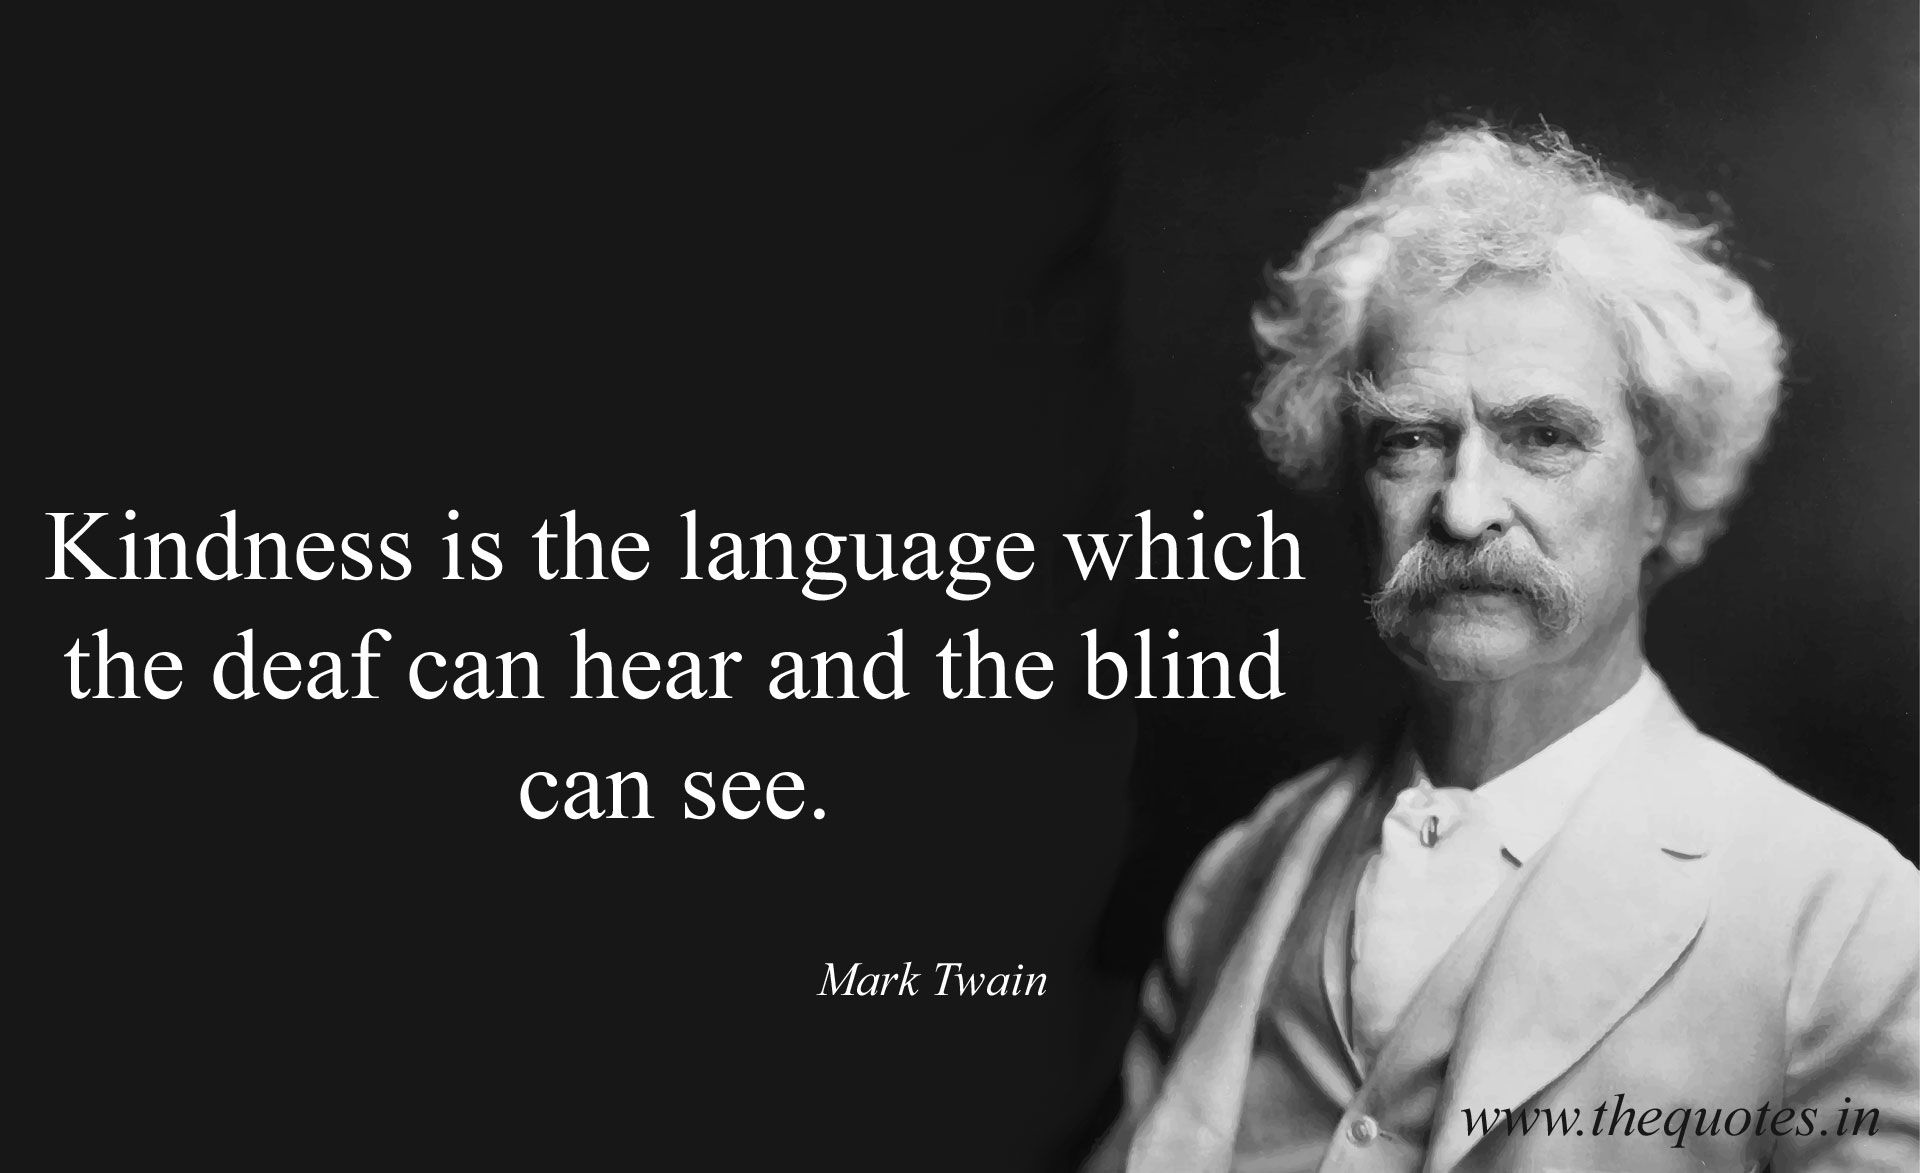 kindness is the language which the deaf can hear and the blind can see - Mark Twain- [1920 × 1173]